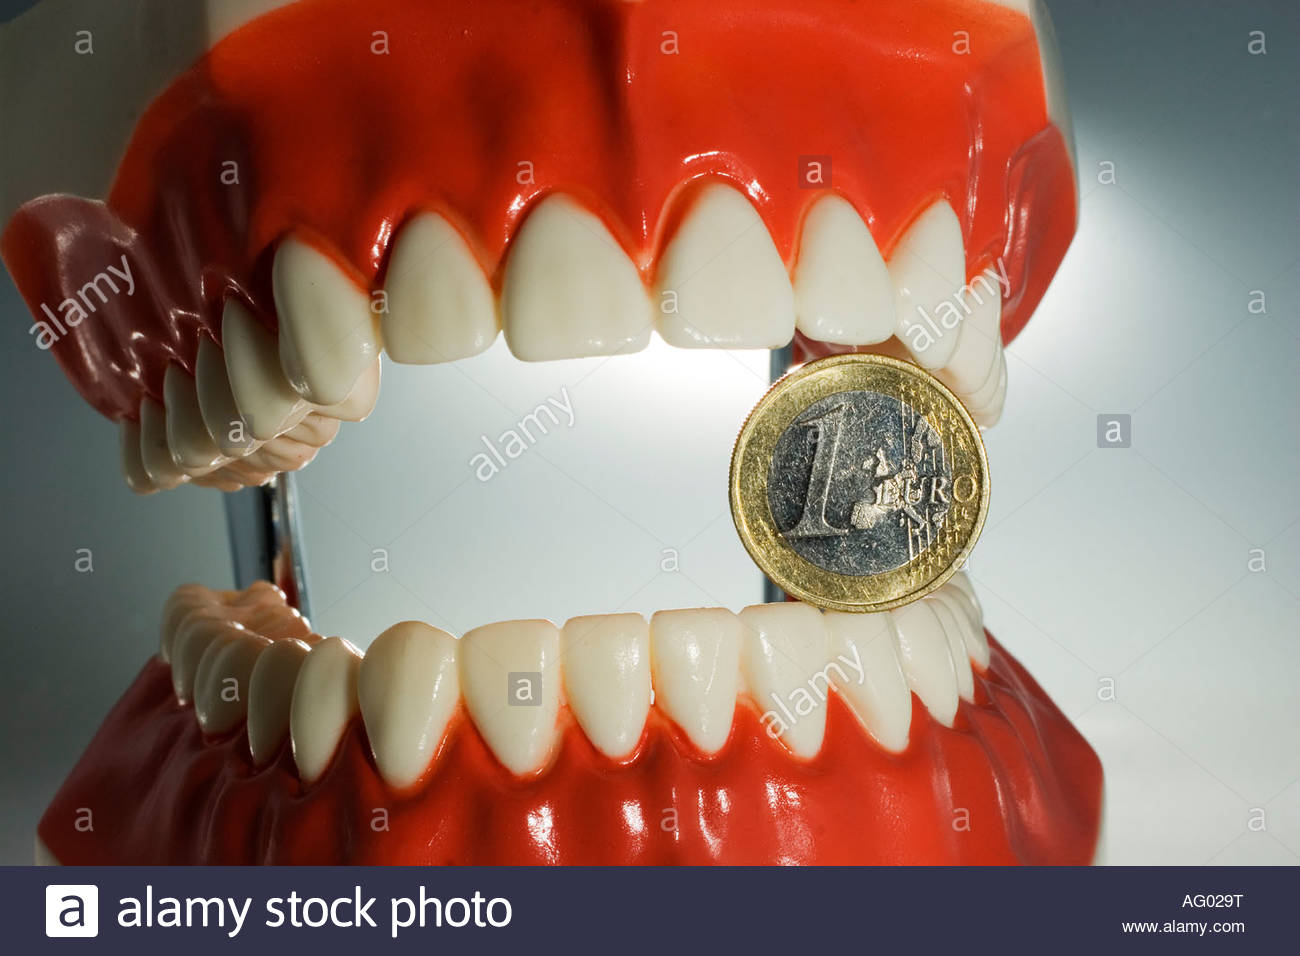 Image result for free images of dentures holding coins